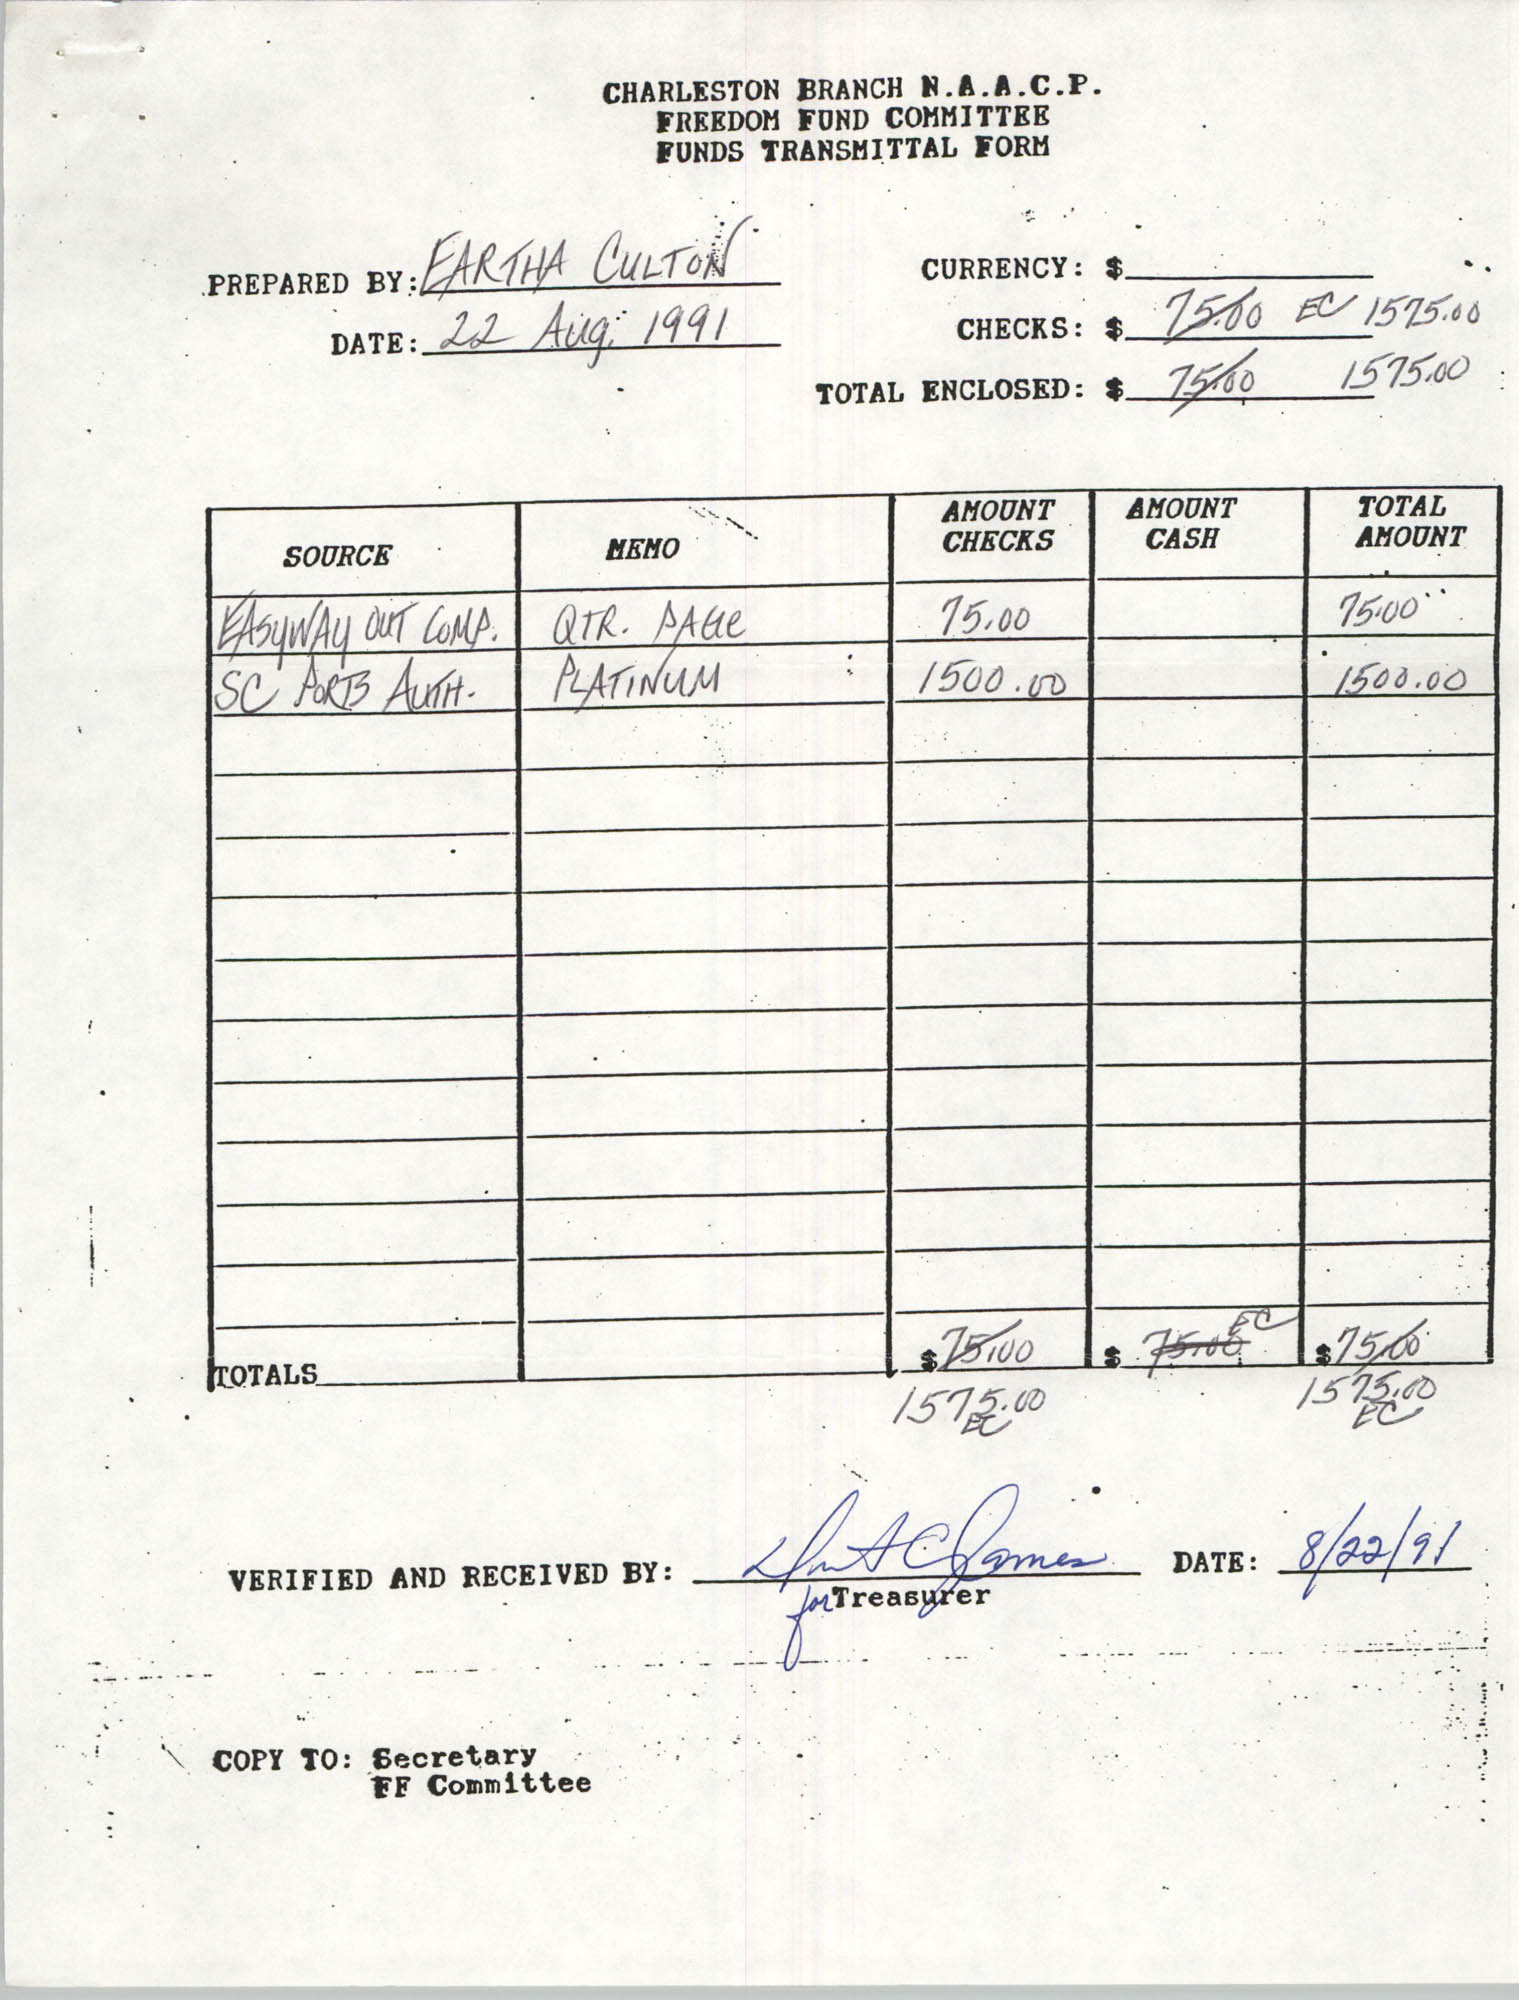 Charleston Branch of the NAACP Funds Transmittal Forms, August 1991, Page 23